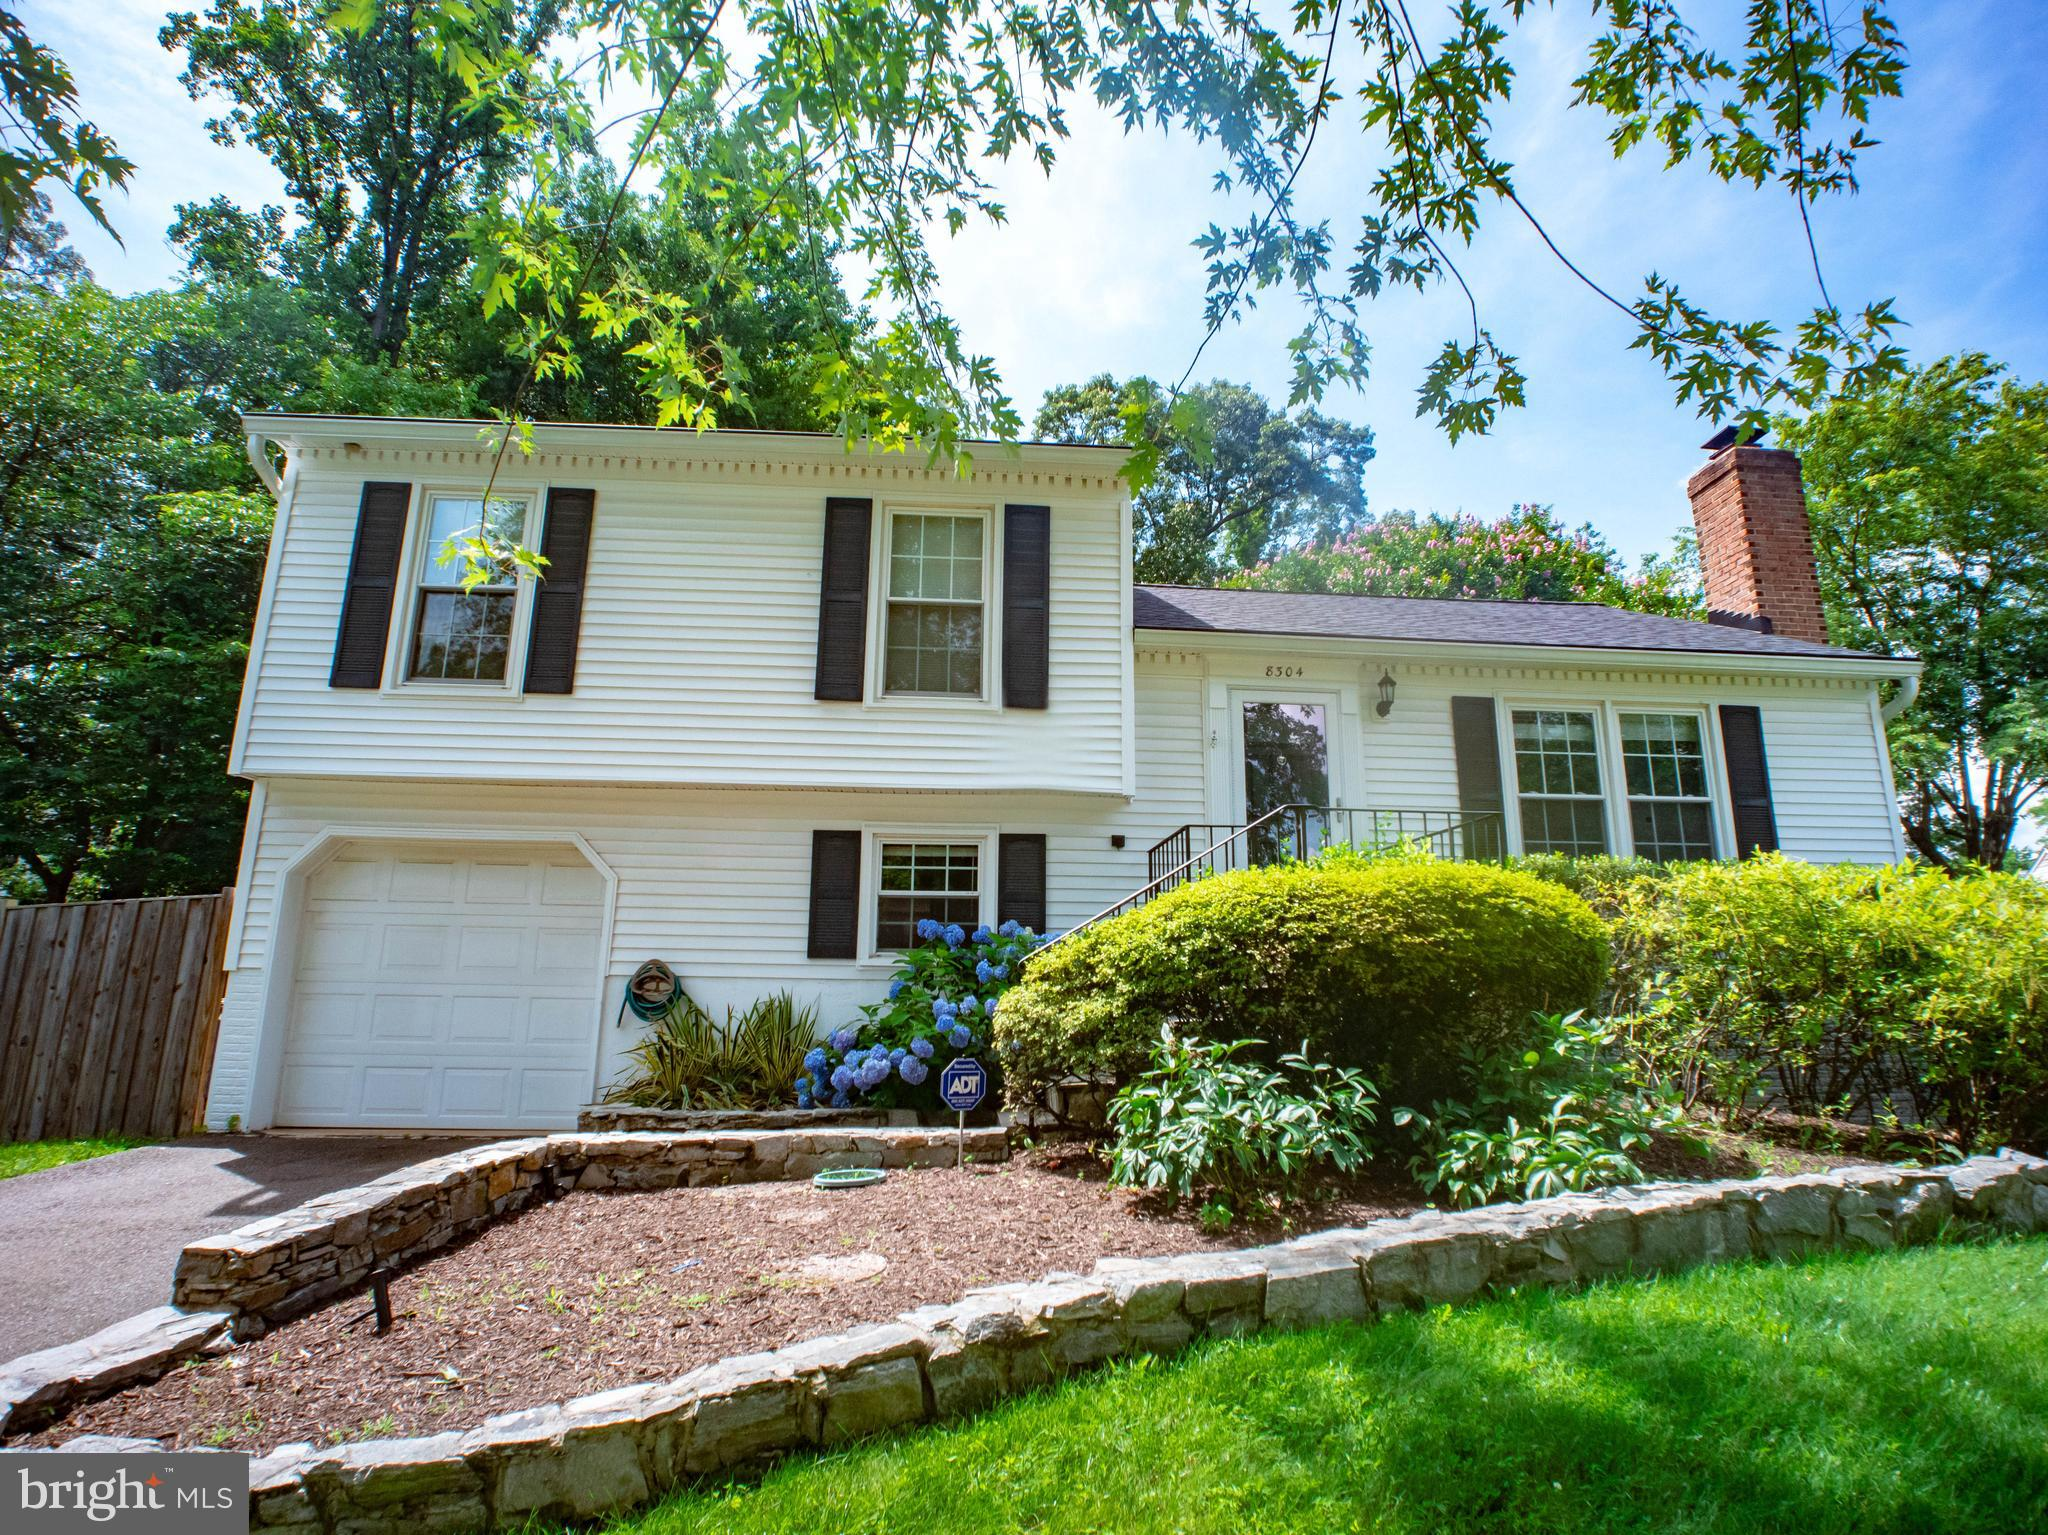 Don't miss your chance to own this beautiful home in Springfield. Just minutes away from the metro, this property is situated in the beautiful neighborhood of Terra Grande. Not one but two culs-de-sac hug this split level home. This incredibly versatile layout flows smoothly from the front door to any level of the beautiful backyard. With this great backyard and it's deck, patio, fire pit and ample space for activities the possibilities are endless. The kitchen is updated and beautifully maintained with stainless steel appliances, granite countertops and hardwood floors throughout. The finished basement provides it's own bedroom, walk in closet, family room and flex room. This home is a must see, do not wait. Schedule your private tour today!